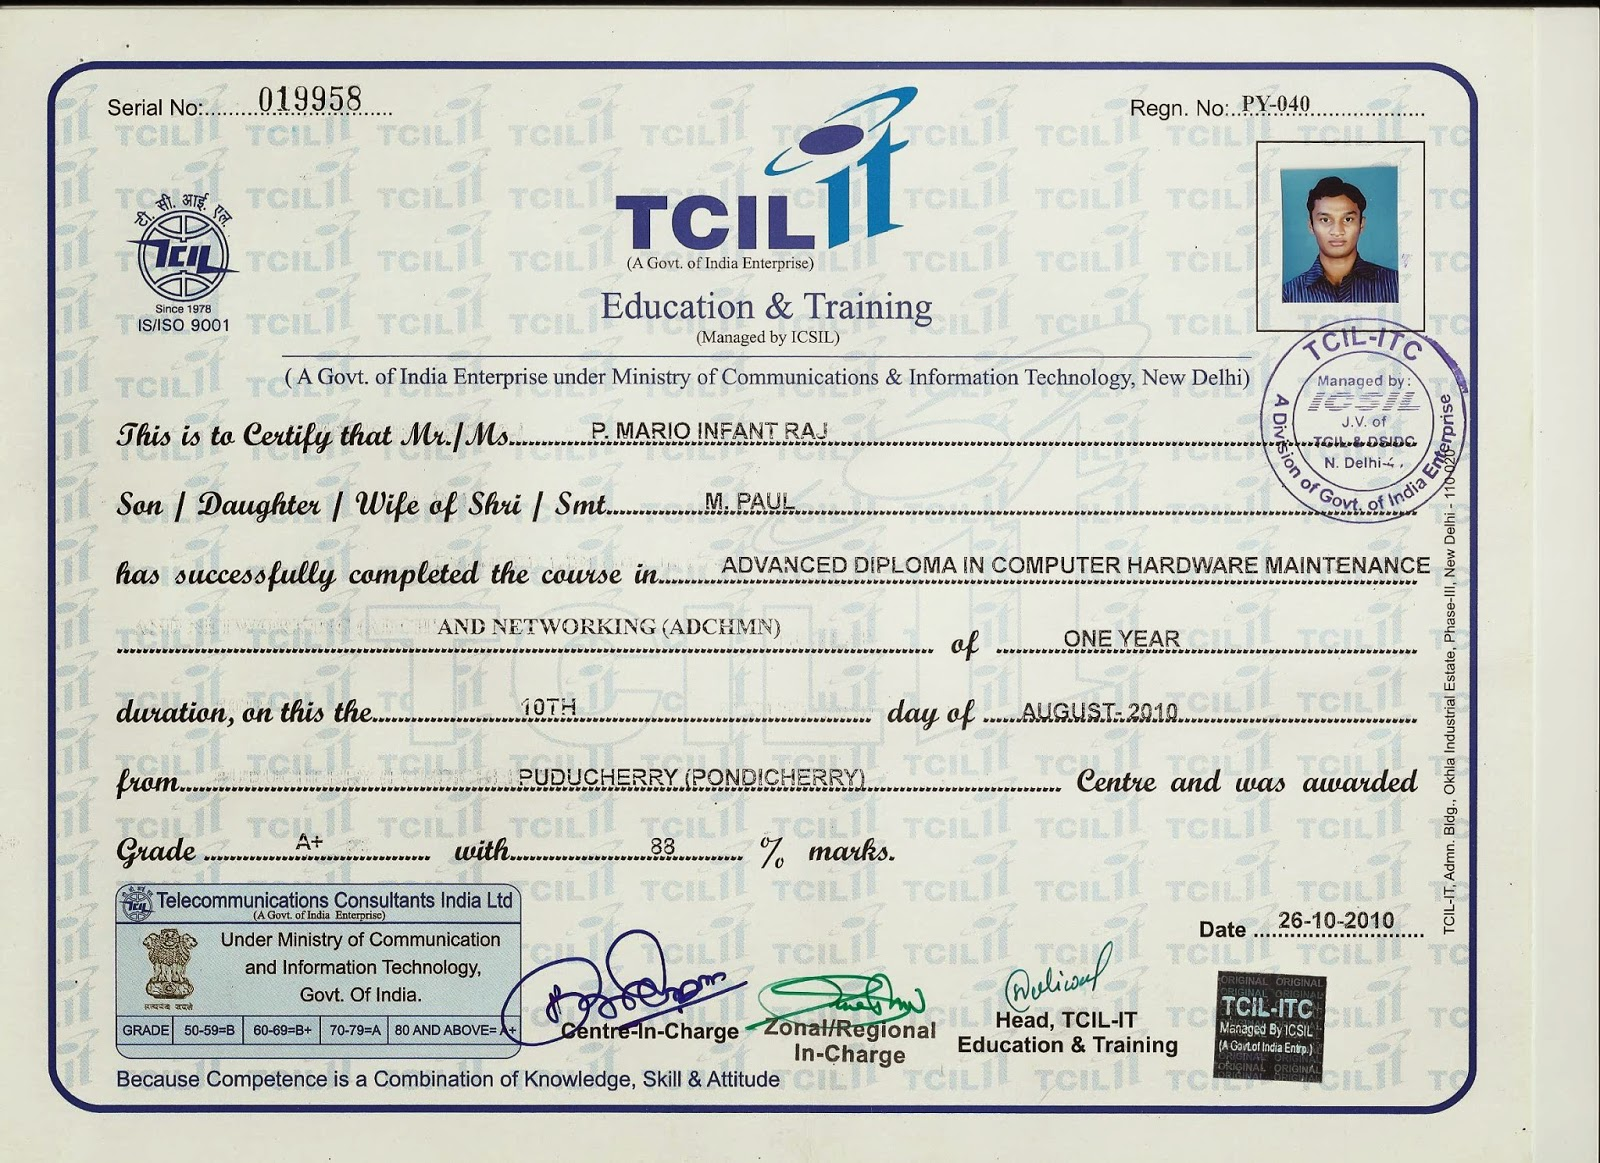 Hi tech global services computer services pondicherry he has made and attended many certificate programs on computer science and has 23 certificates on it as a slow work started working on day and night started xflitez Images